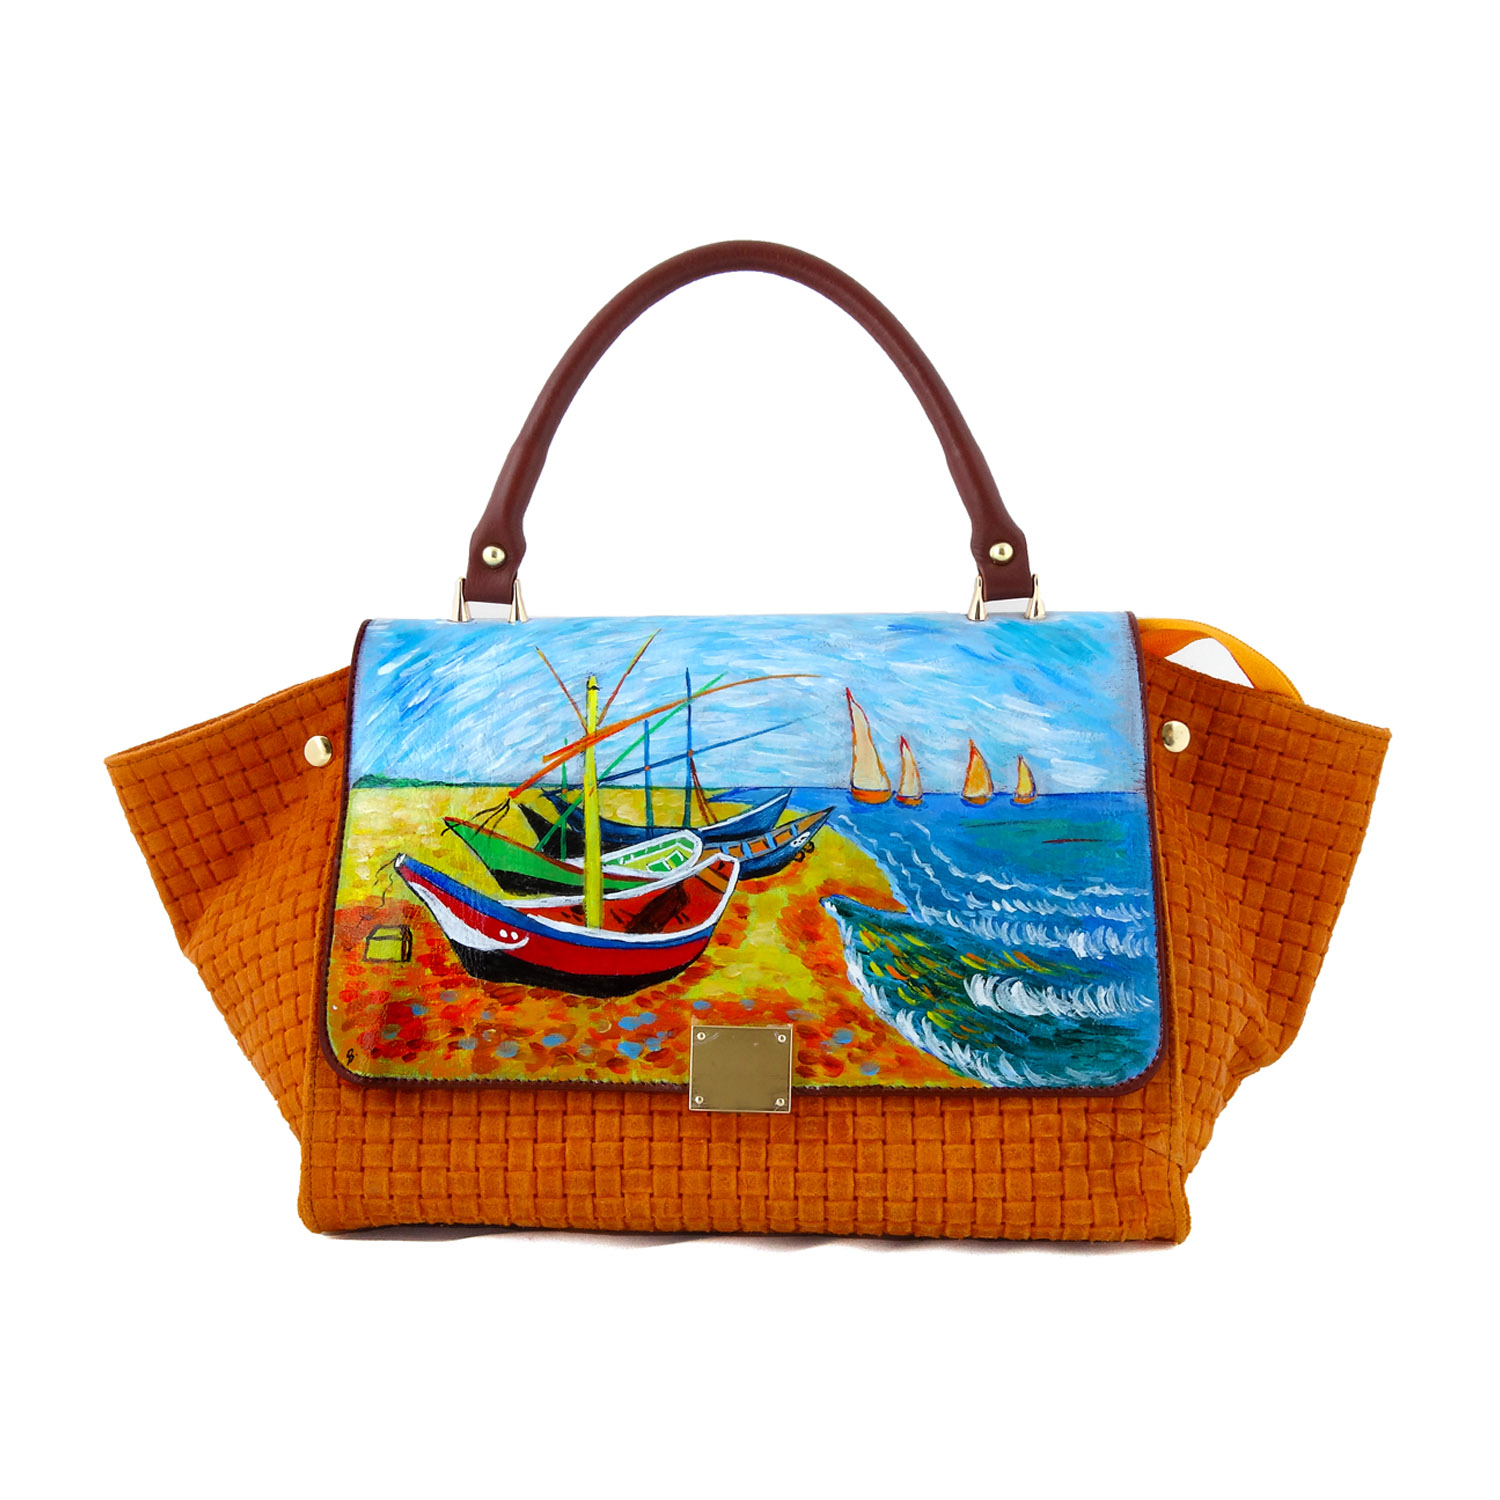 Hand painted bag - Fishing boats on the beach of Les Saintes-Maries-de-la-Mer by Van Gogh